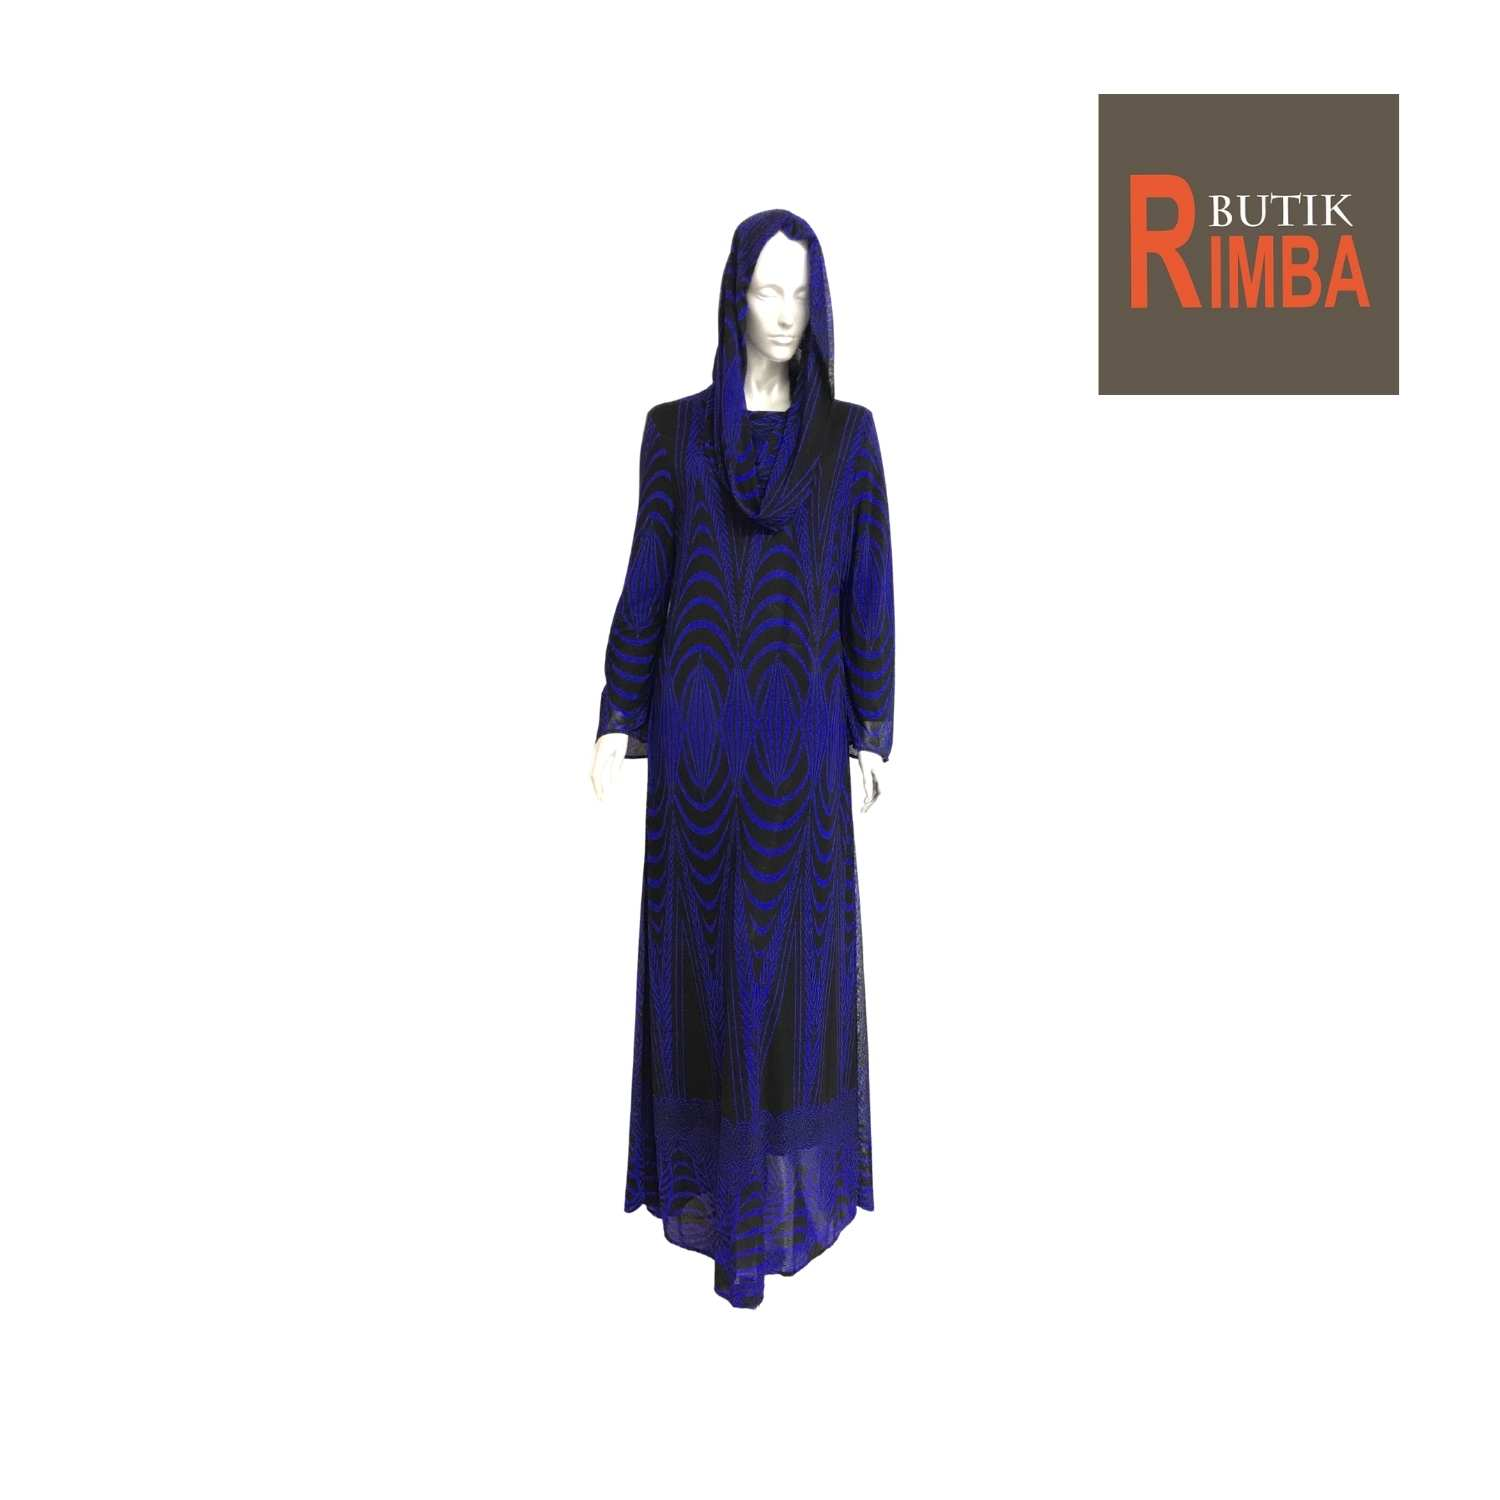 JUBAH DRESS HOODIE LONG SLEEVE NET STRETCHABLE,COOLING AND ELEGANT FOR FASHIONABLE WOMEN 03